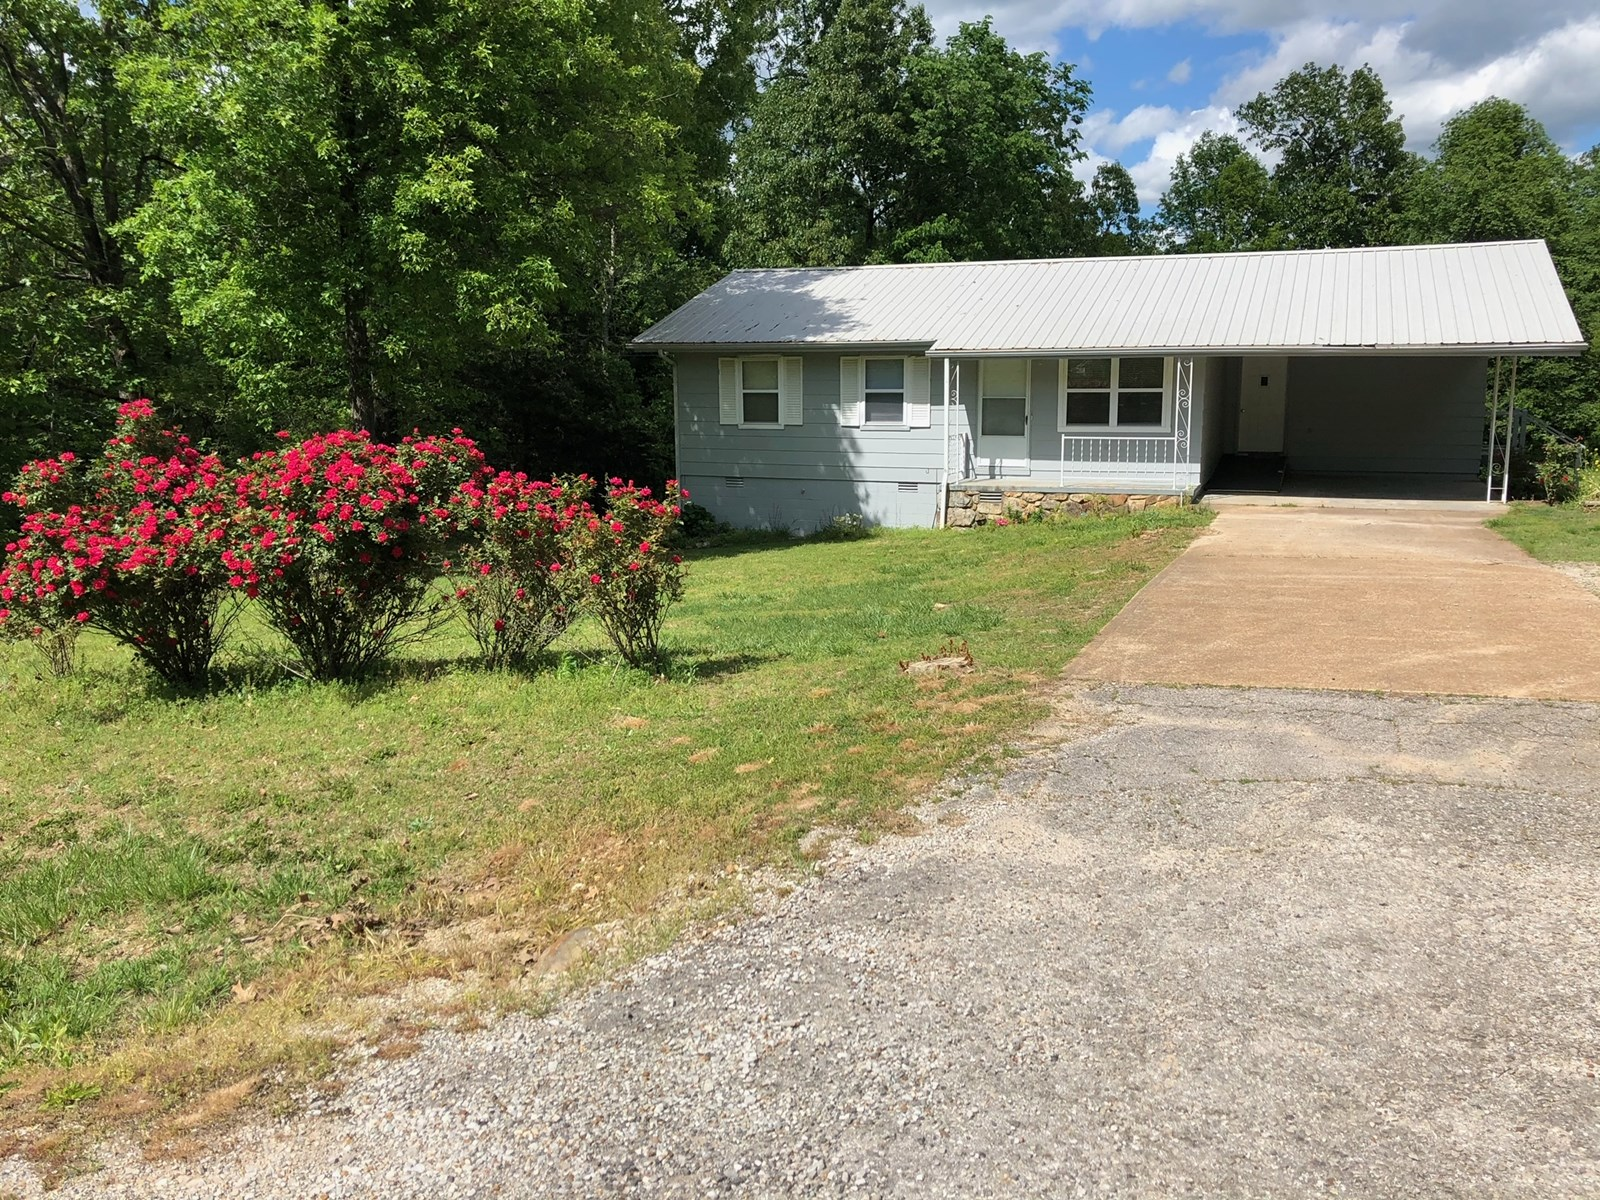 Newly Remodeled Home in Horseshoe Bend, AR.